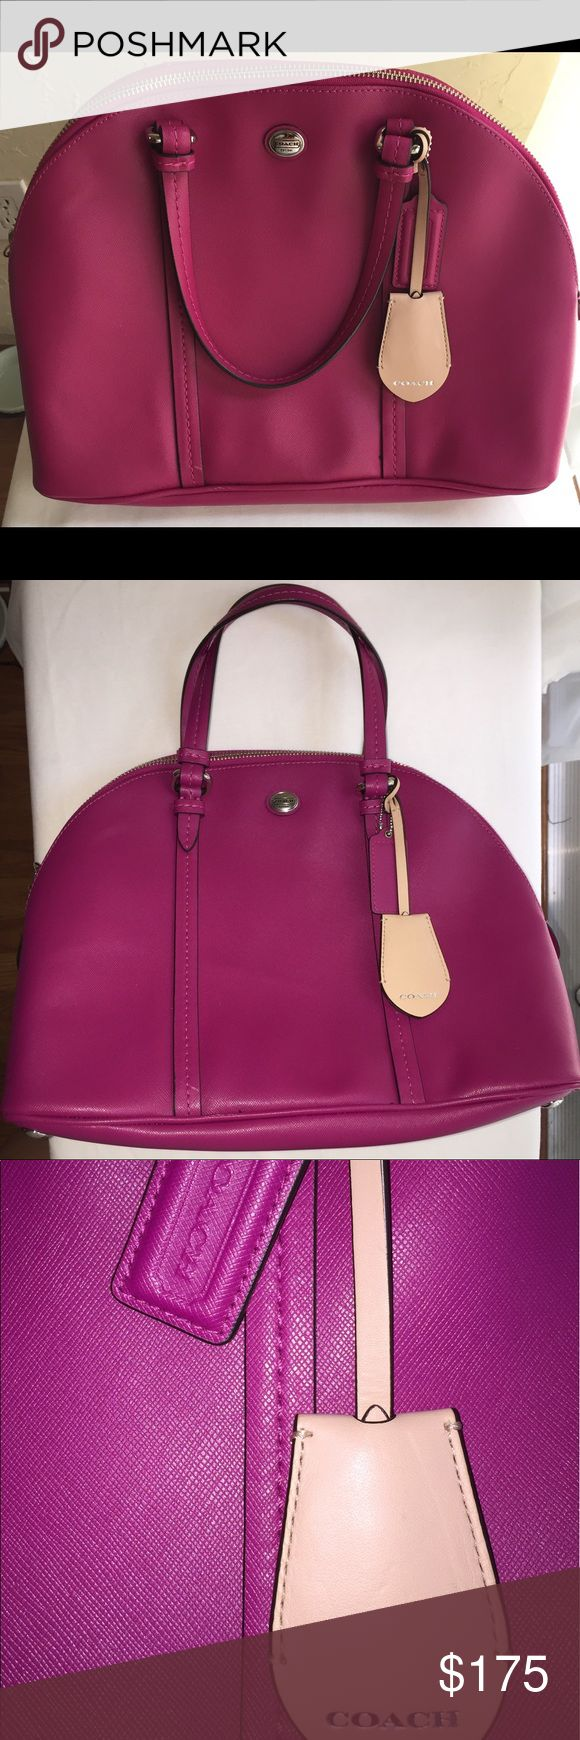 Fuchsia Coach Purse OMG Cute Coach Bag!!!  Bag is in excellent condition Super Clean!! Please look at photos.  Open to offers😀!  Thanks for looking!  ✌️❤️❤️ Coach Bags Hobos